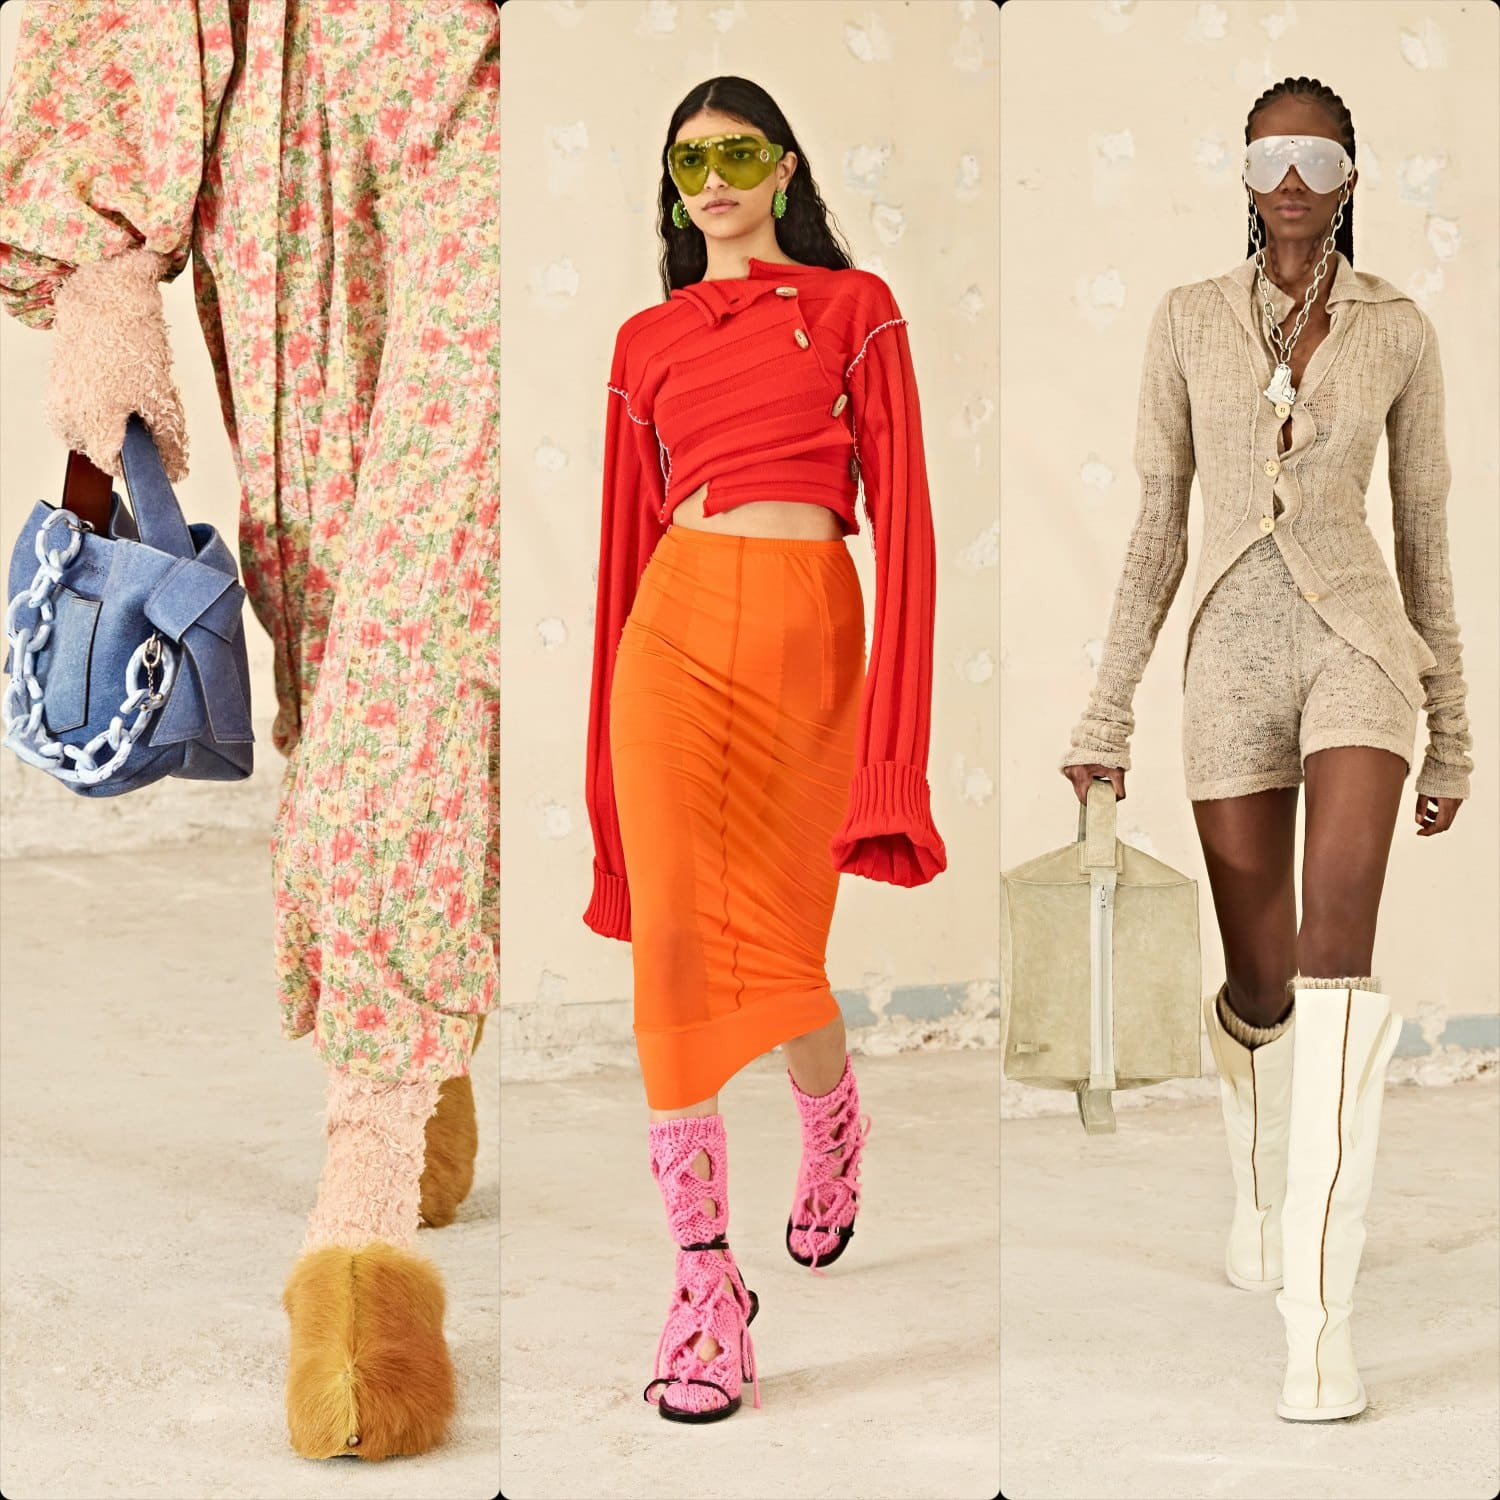 Acne Studios Fall Winter 2021-2022 Paris by RUNWAY MAGAZINE